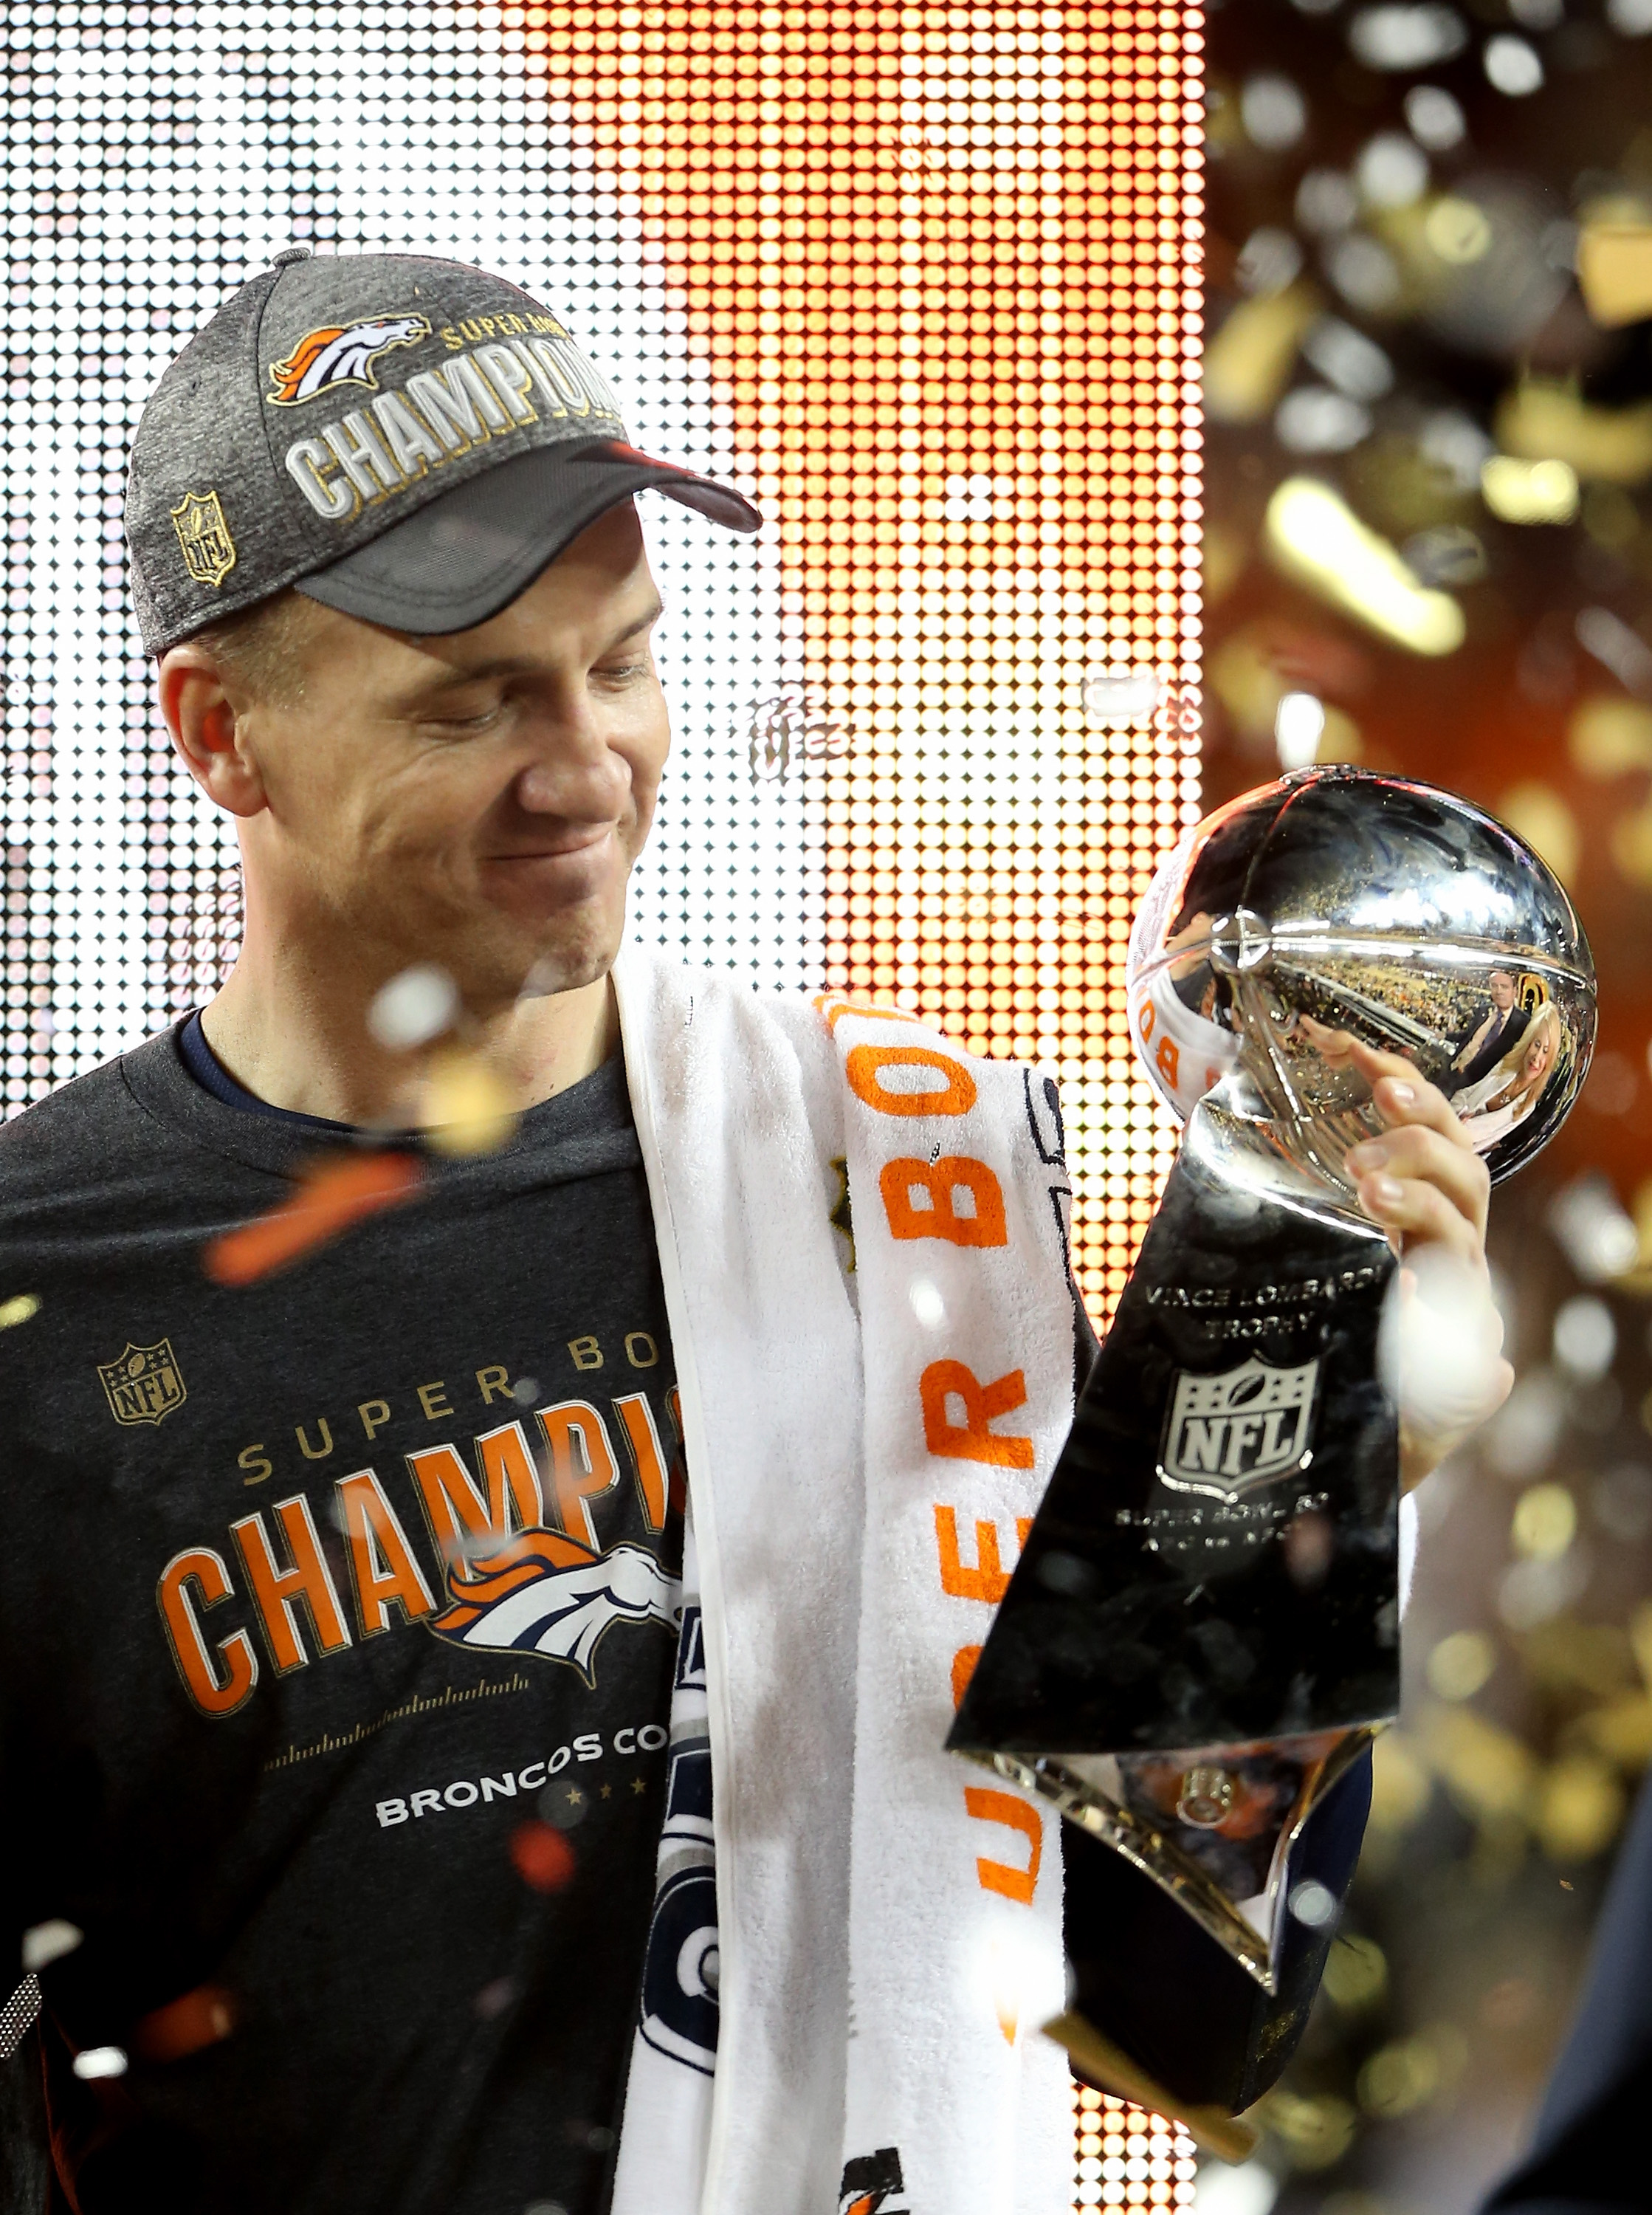 Peyton Manning #18 of the Denver Broncos celebrates with the Vince Lombardi Trophy after winning Super Bowl 50 at Levi's Stadium on February 7, 2016 in Santa Clara, California. The Denver Broncos defeated the Carolina Panthers 24-10.  (Photo by Streeter Lecka/Getty Images)